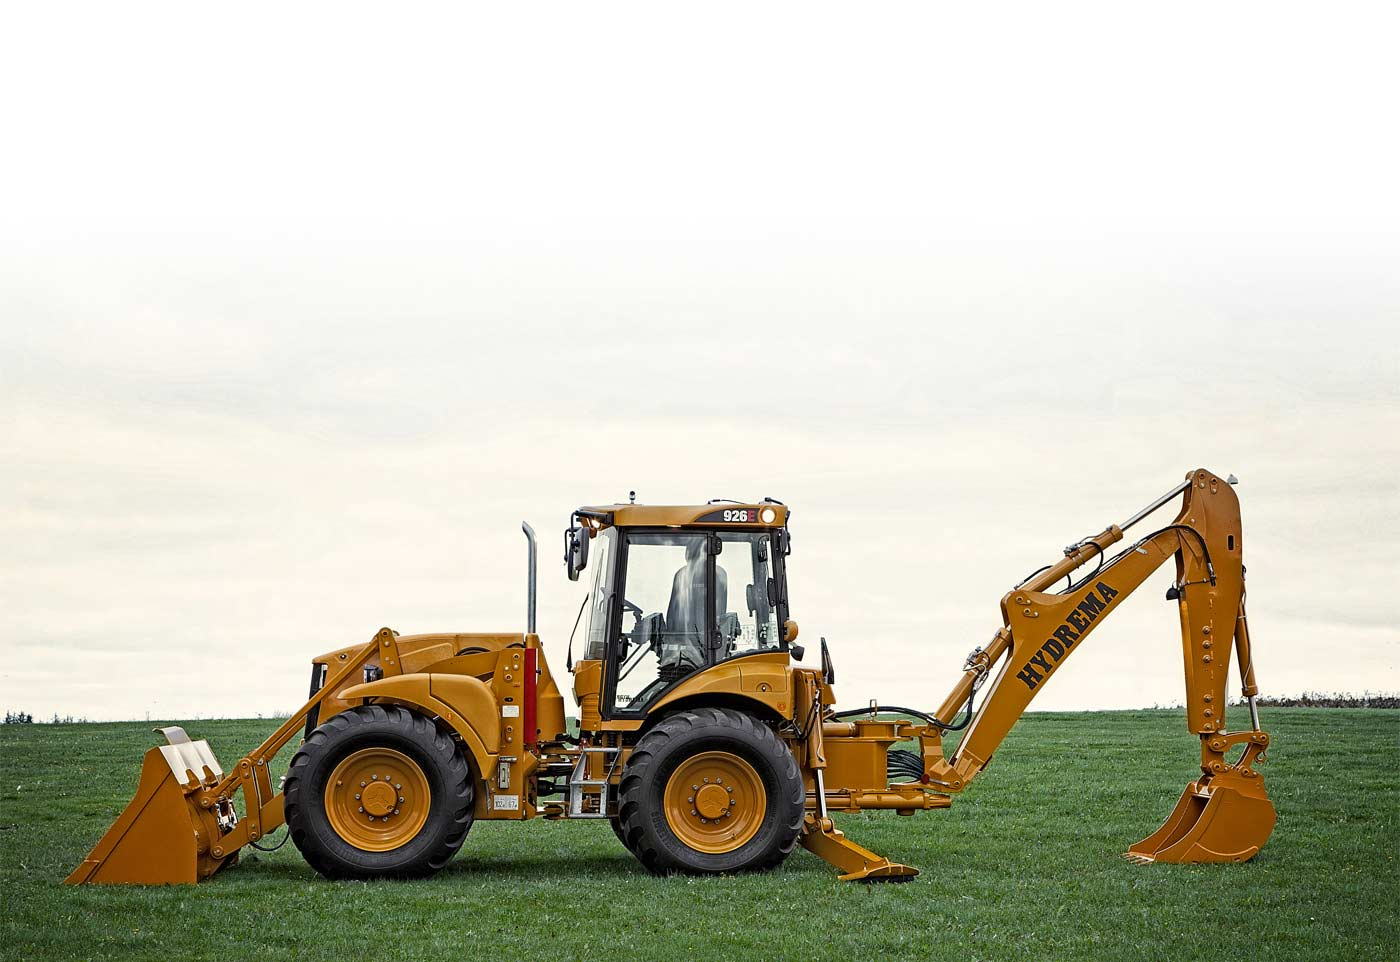 Simply the best backhoe loader on the market!